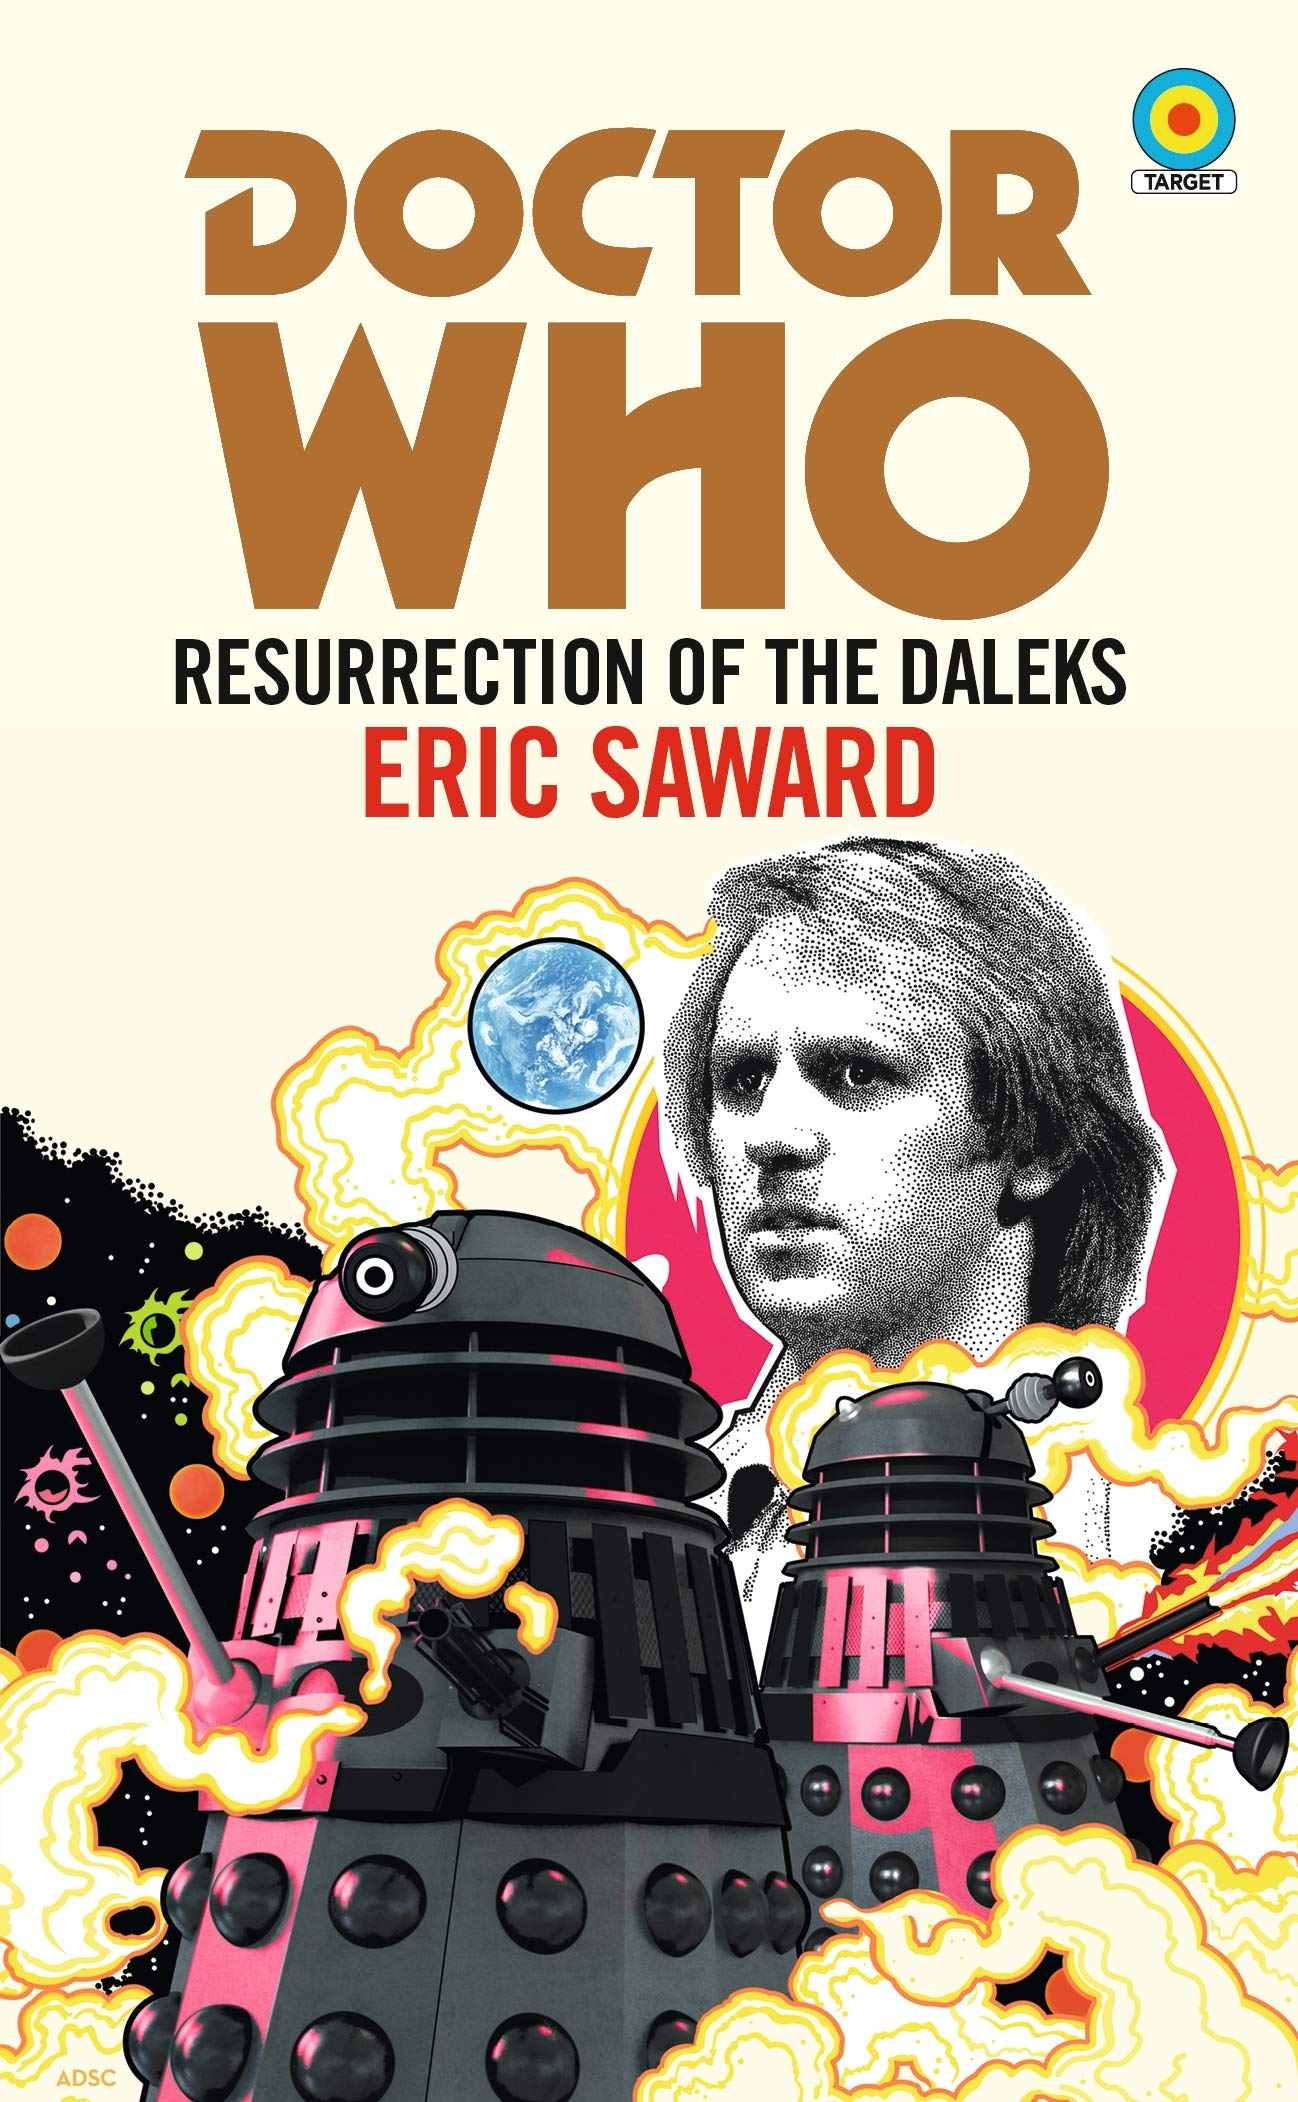 BBC Books - Resurrection of the Daleks by Eric Saward - Target Novelisation (Cover) Anthony Dry Fifth Doctor